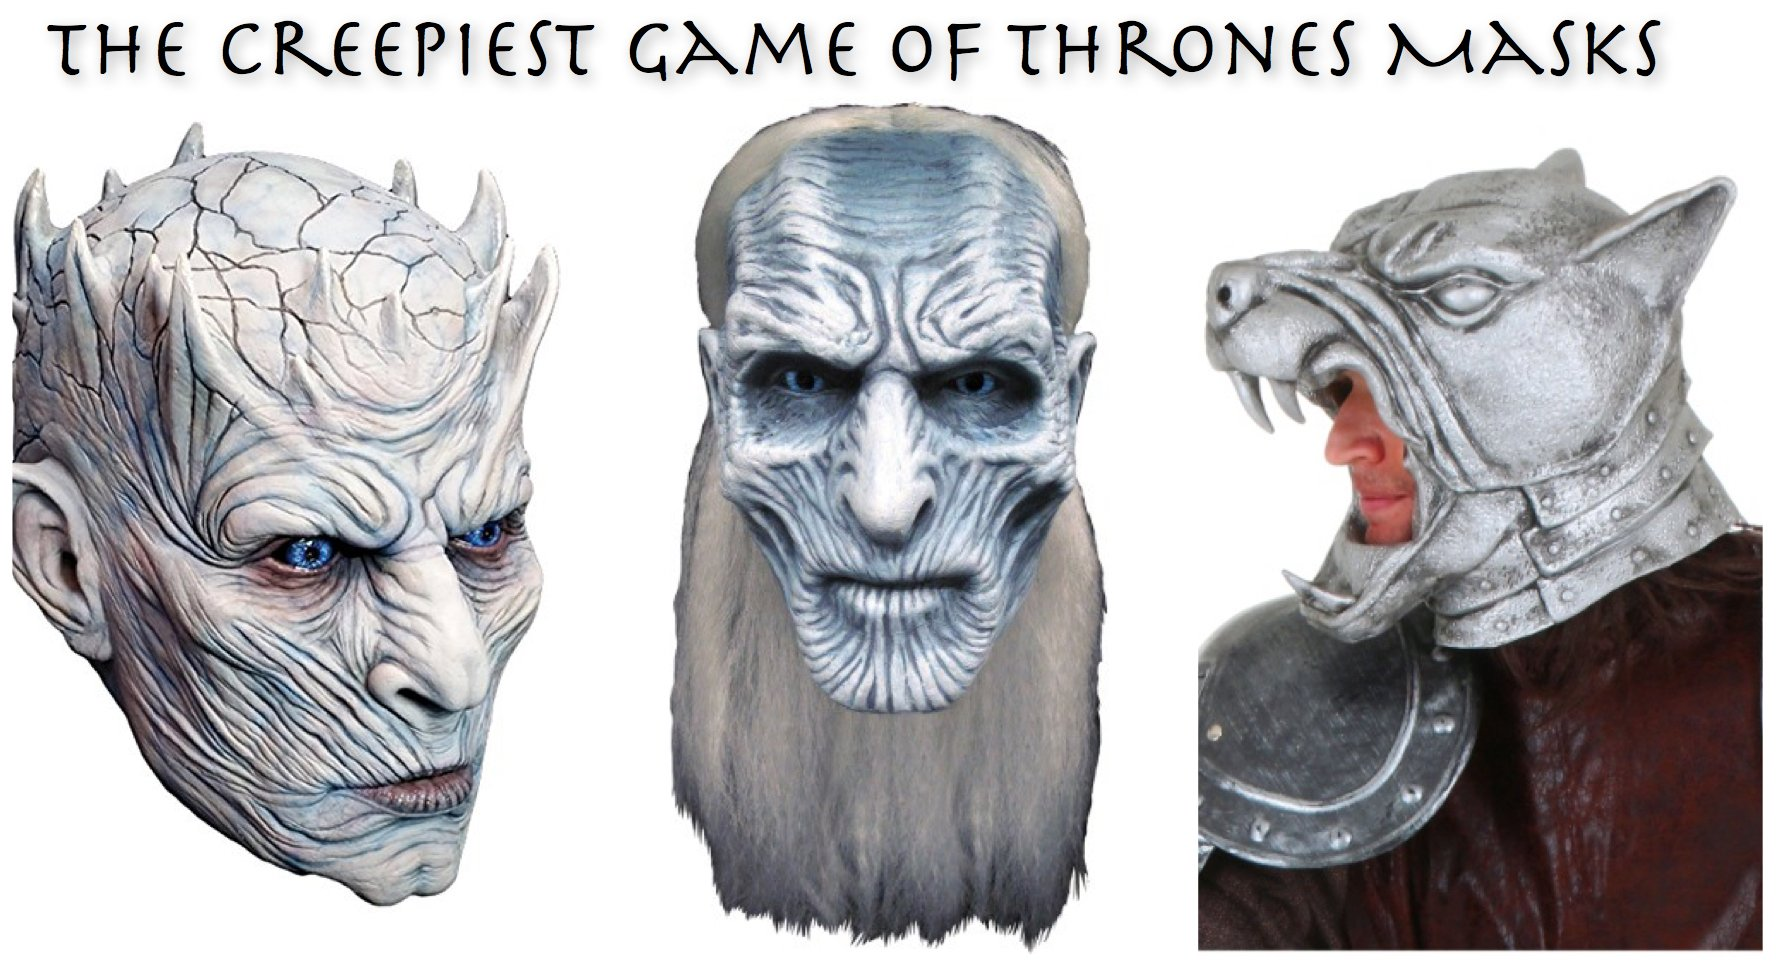 The Creepiest Game of Thrones Masks